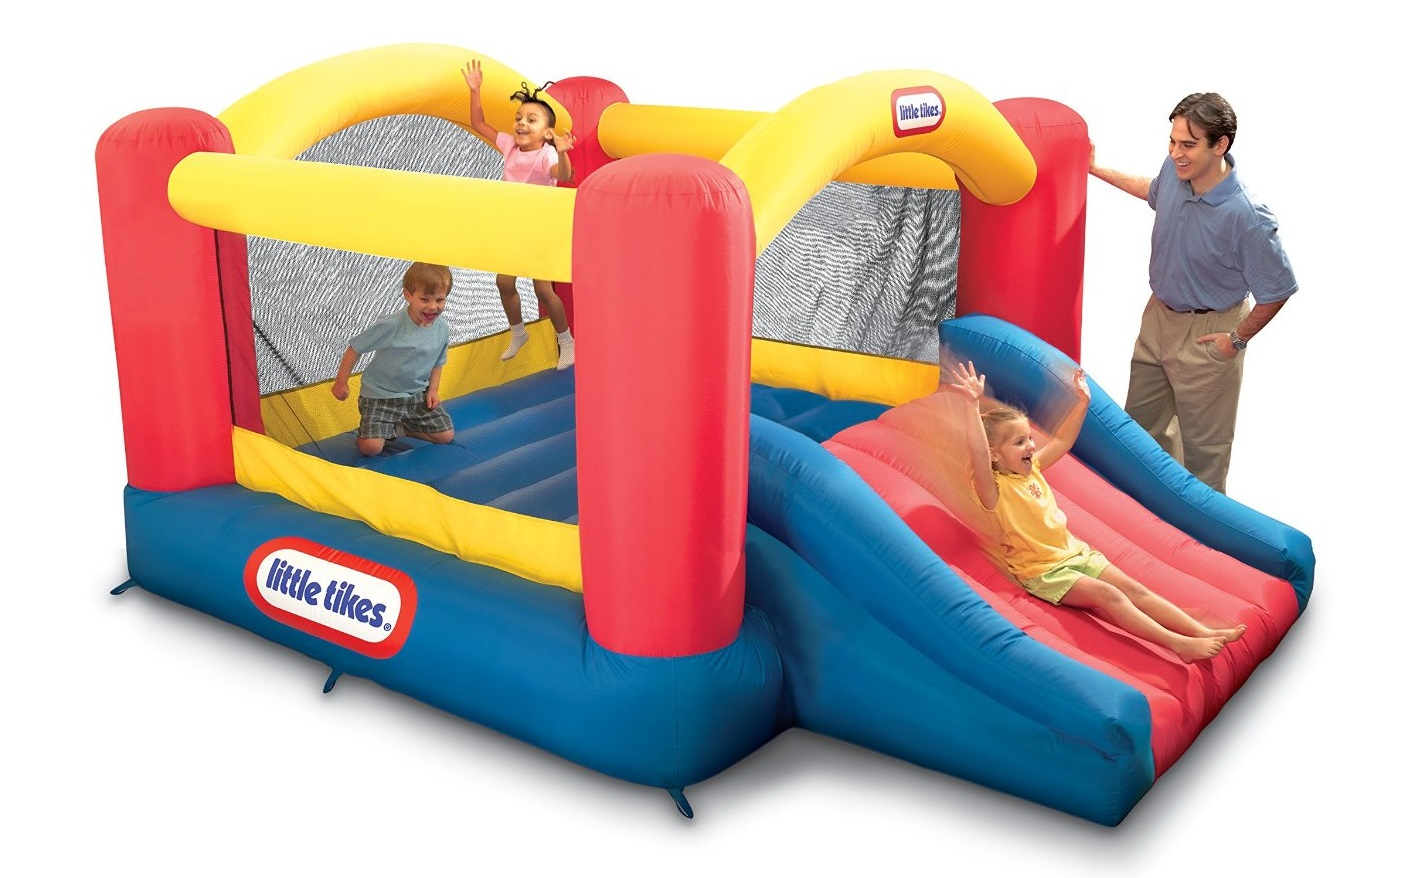 Toys For Little : Best indoor bounce house which one to buy